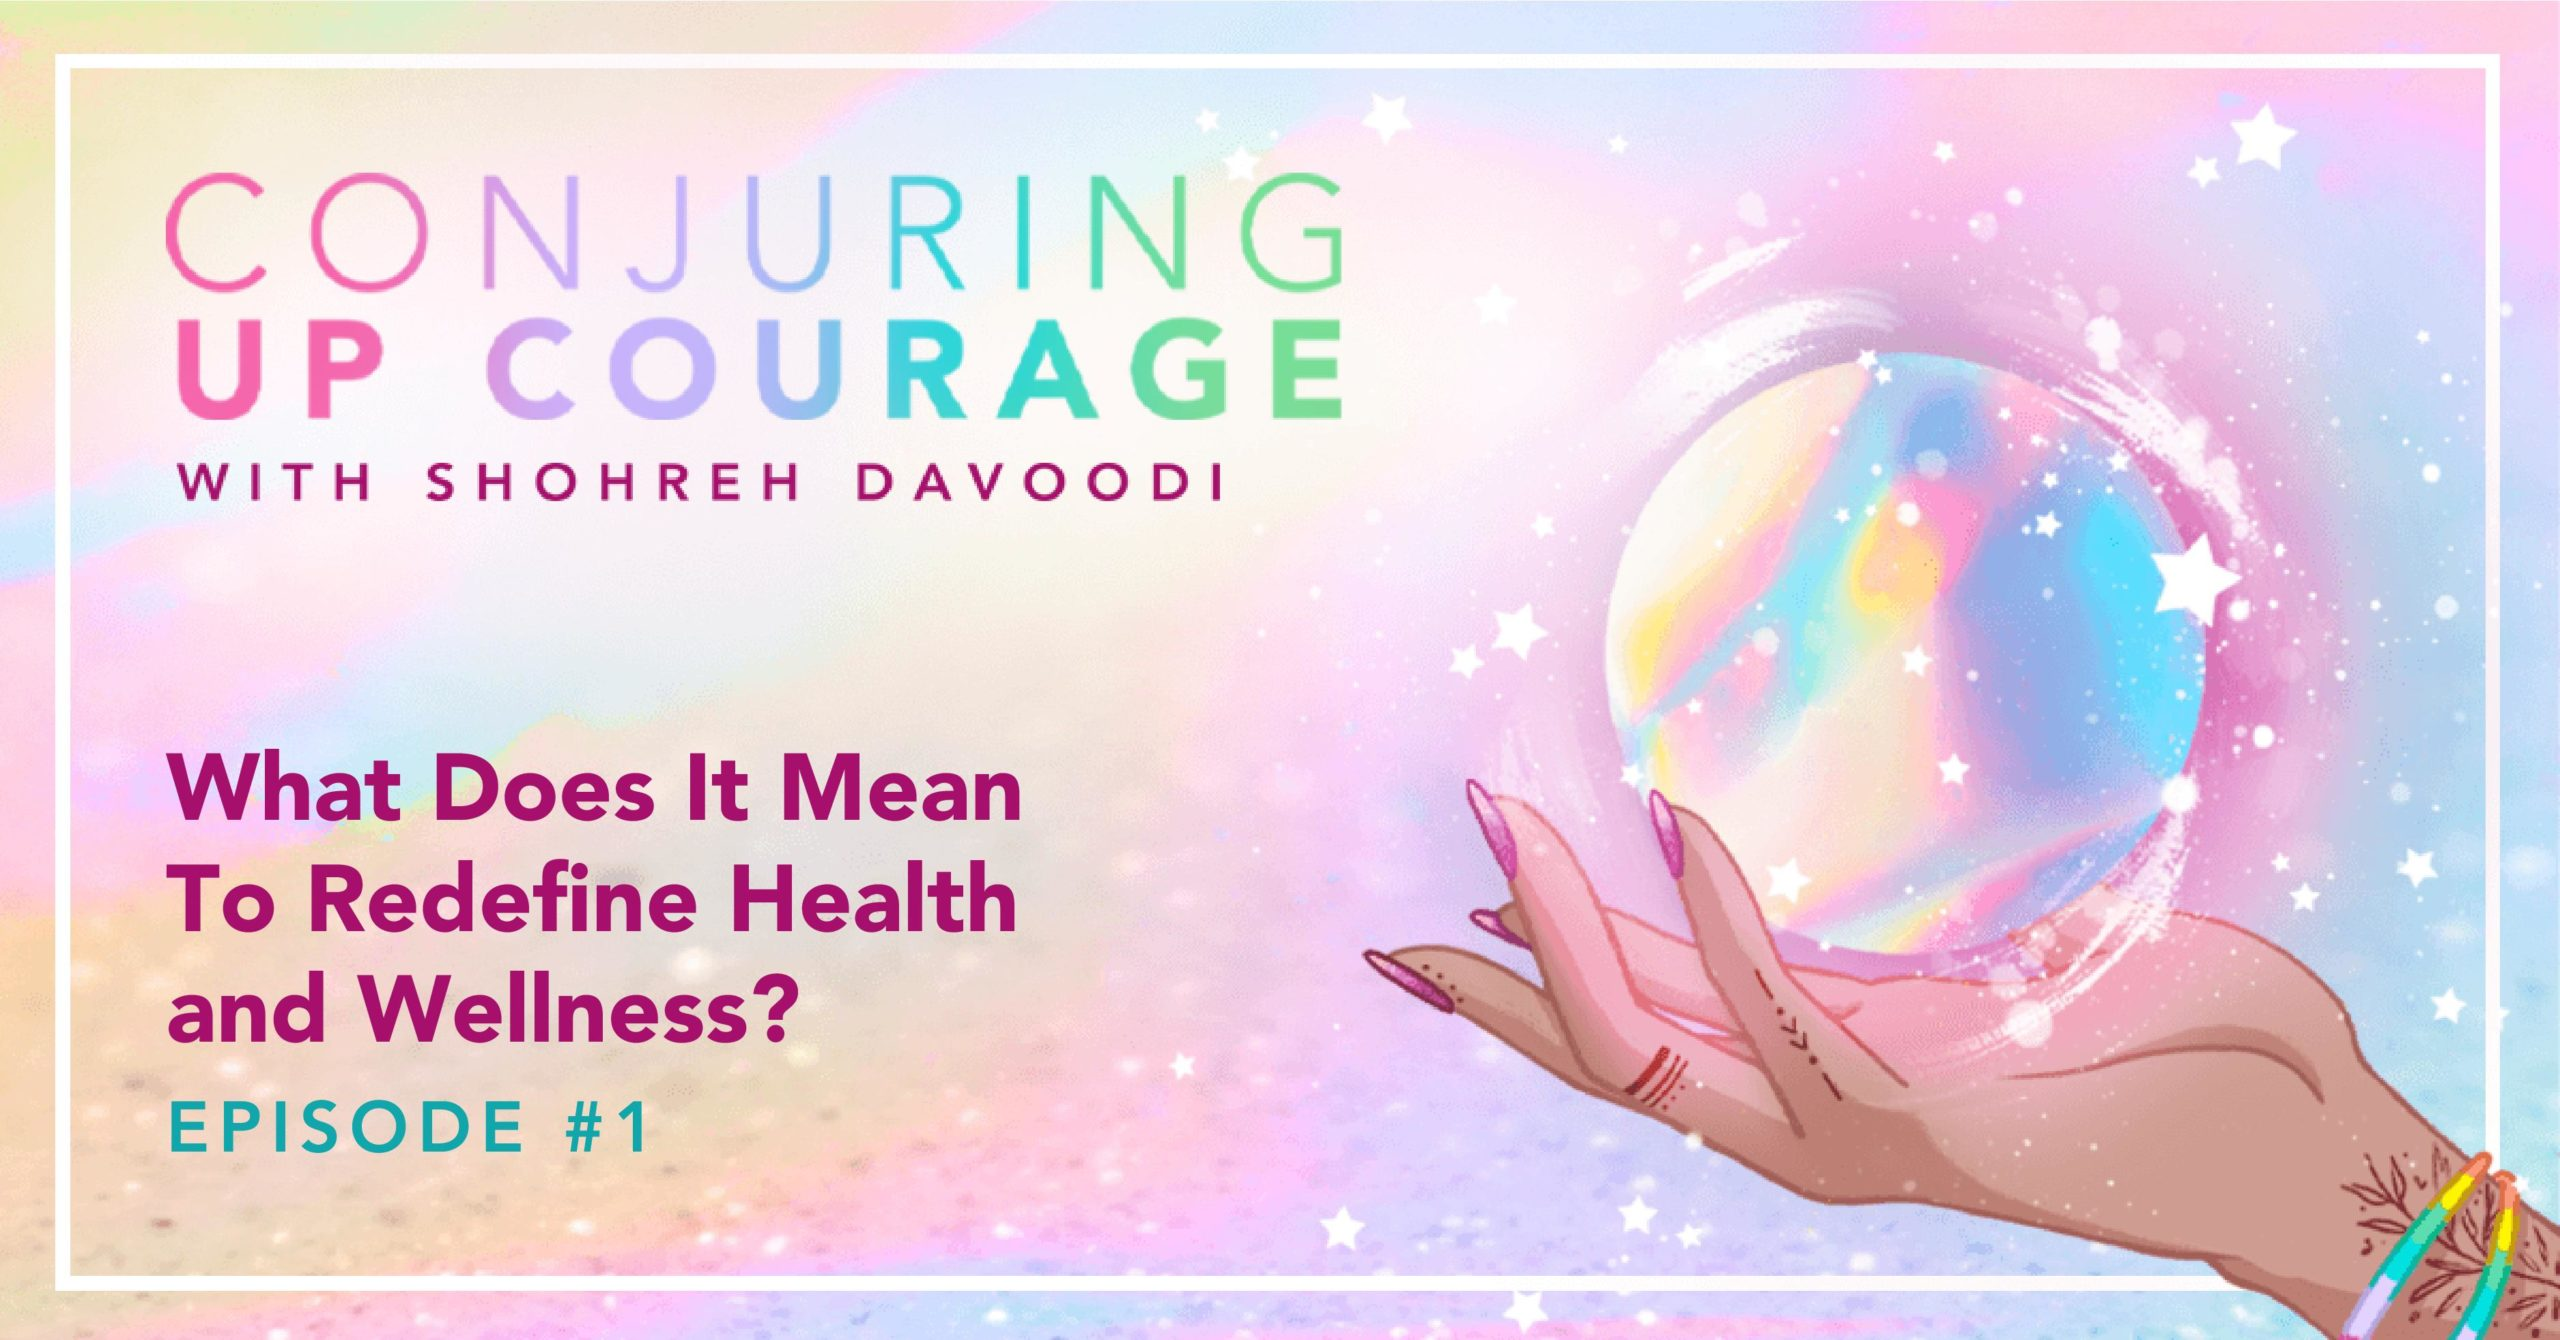 """The Conjuring Up Courage logo, a hand holding a rainbow pastel crystal ball, and the words, """"What Does It Mean To Redefine Health and Wellness? Episode #1"""""""